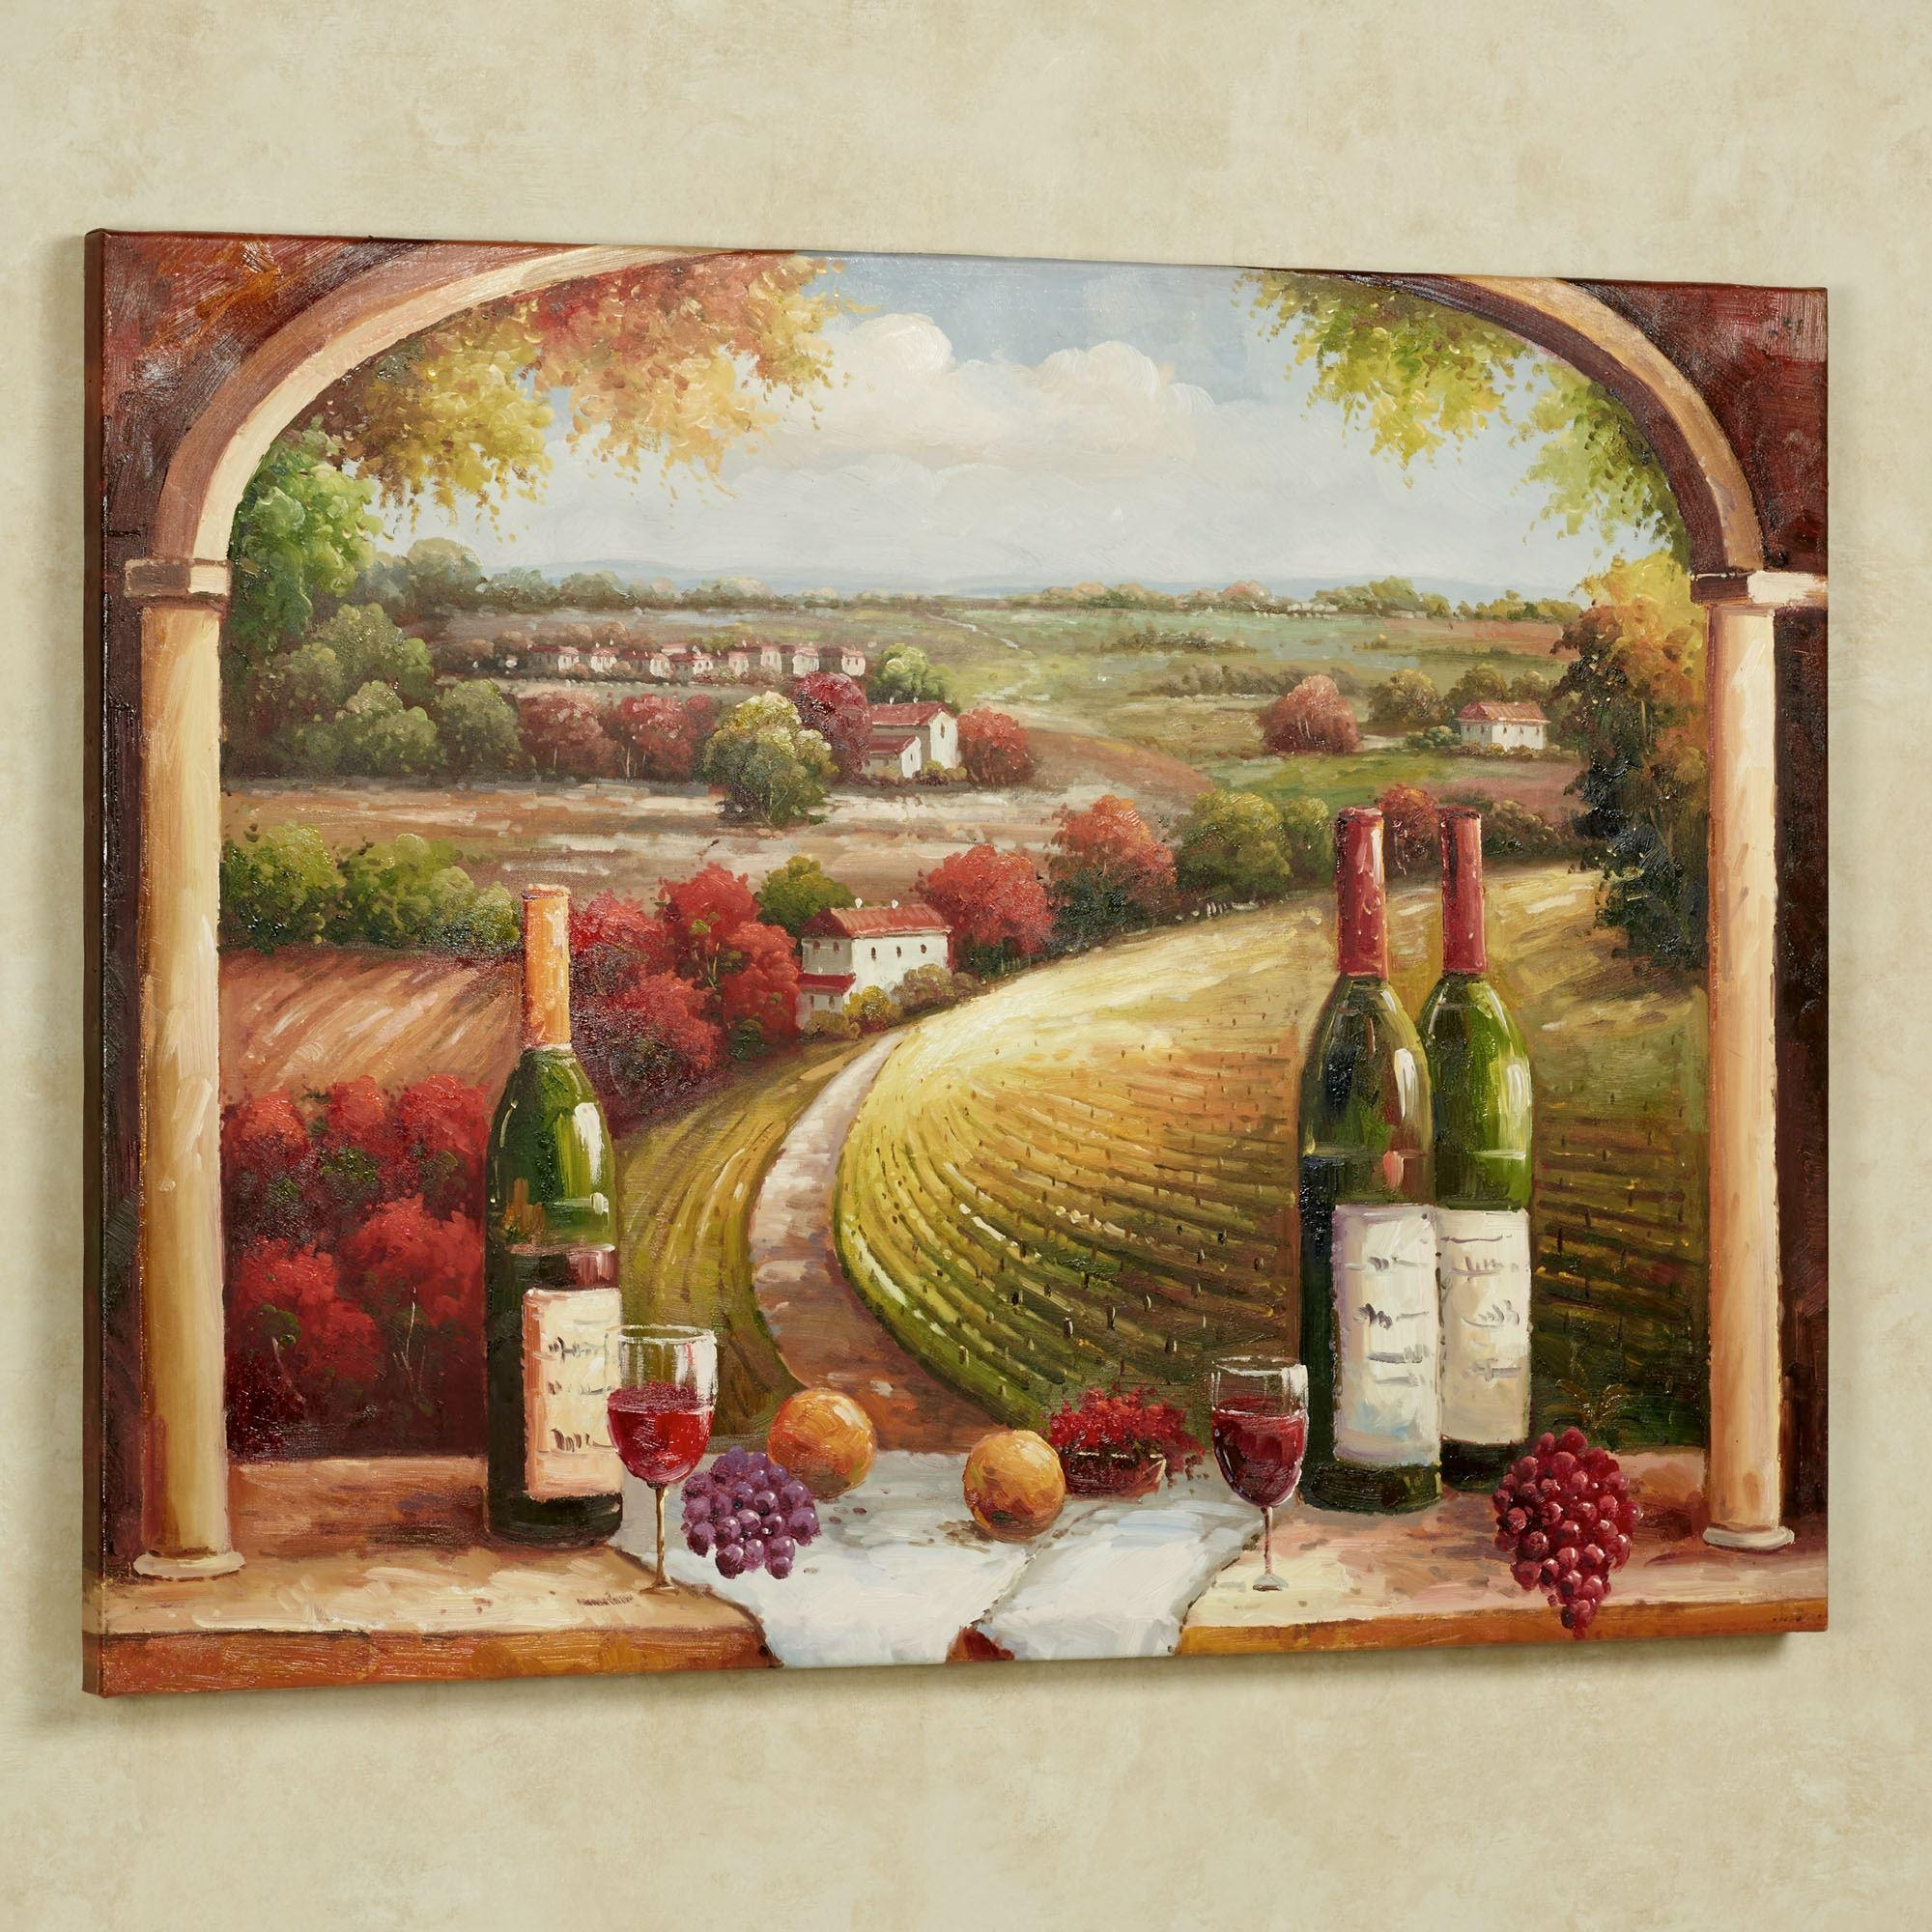 Canvas Wall Art | Touch Of Class Regarding Rustic Italian Wall Art (Image 3 of 20)